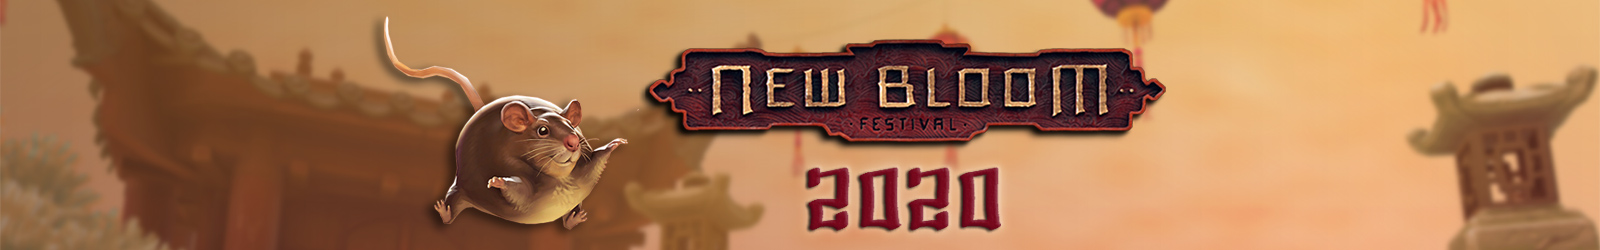 Main Page Giant Banner New Bloom 2020.jpg